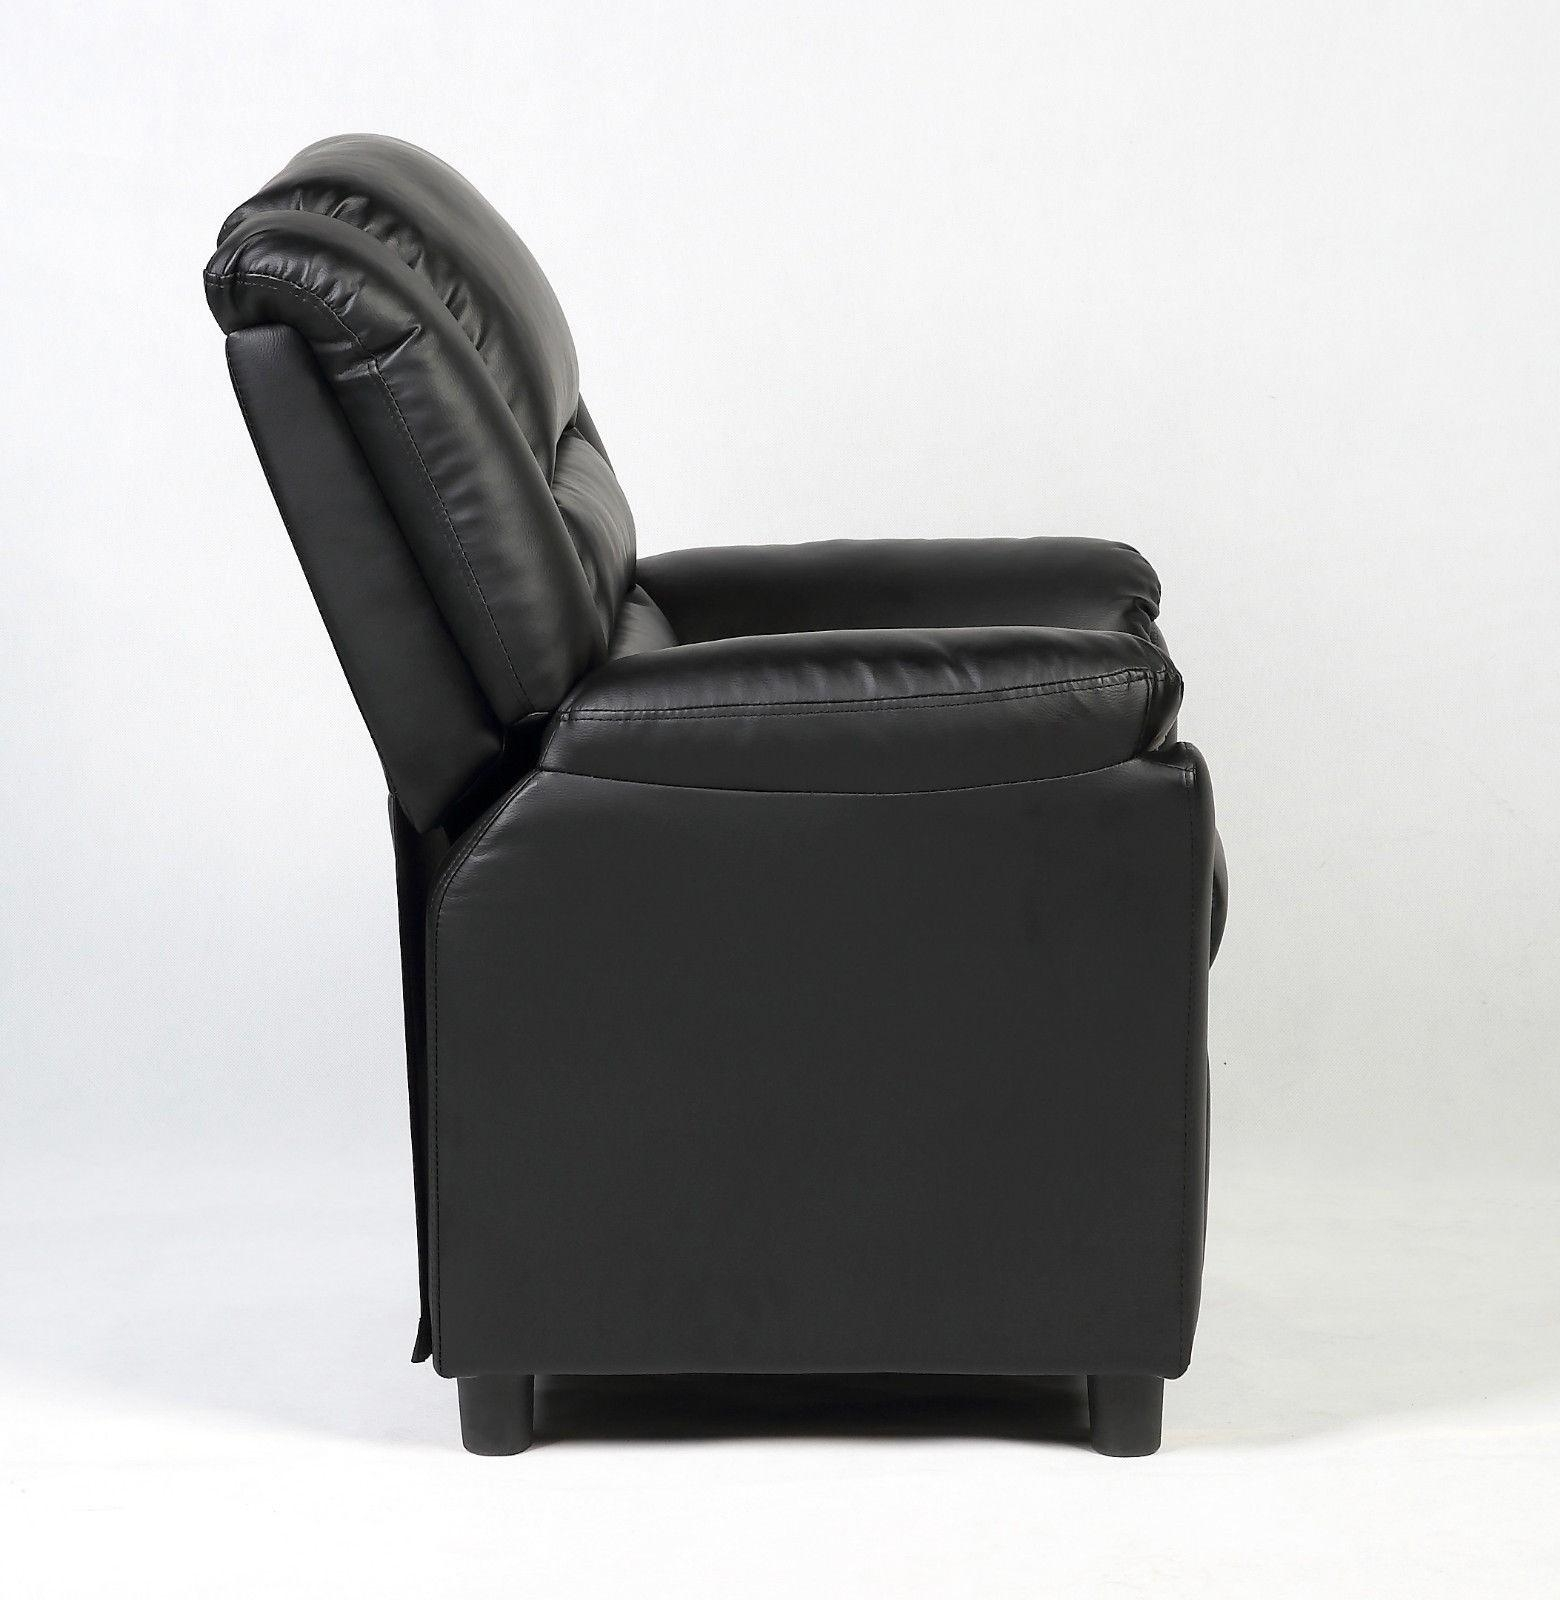 Ergonomic Kids Sofa Manual Recliner – Arm Chairs, Recliners With Regard To Ergonomic Sofas And Chairs (Image 10 of 20)